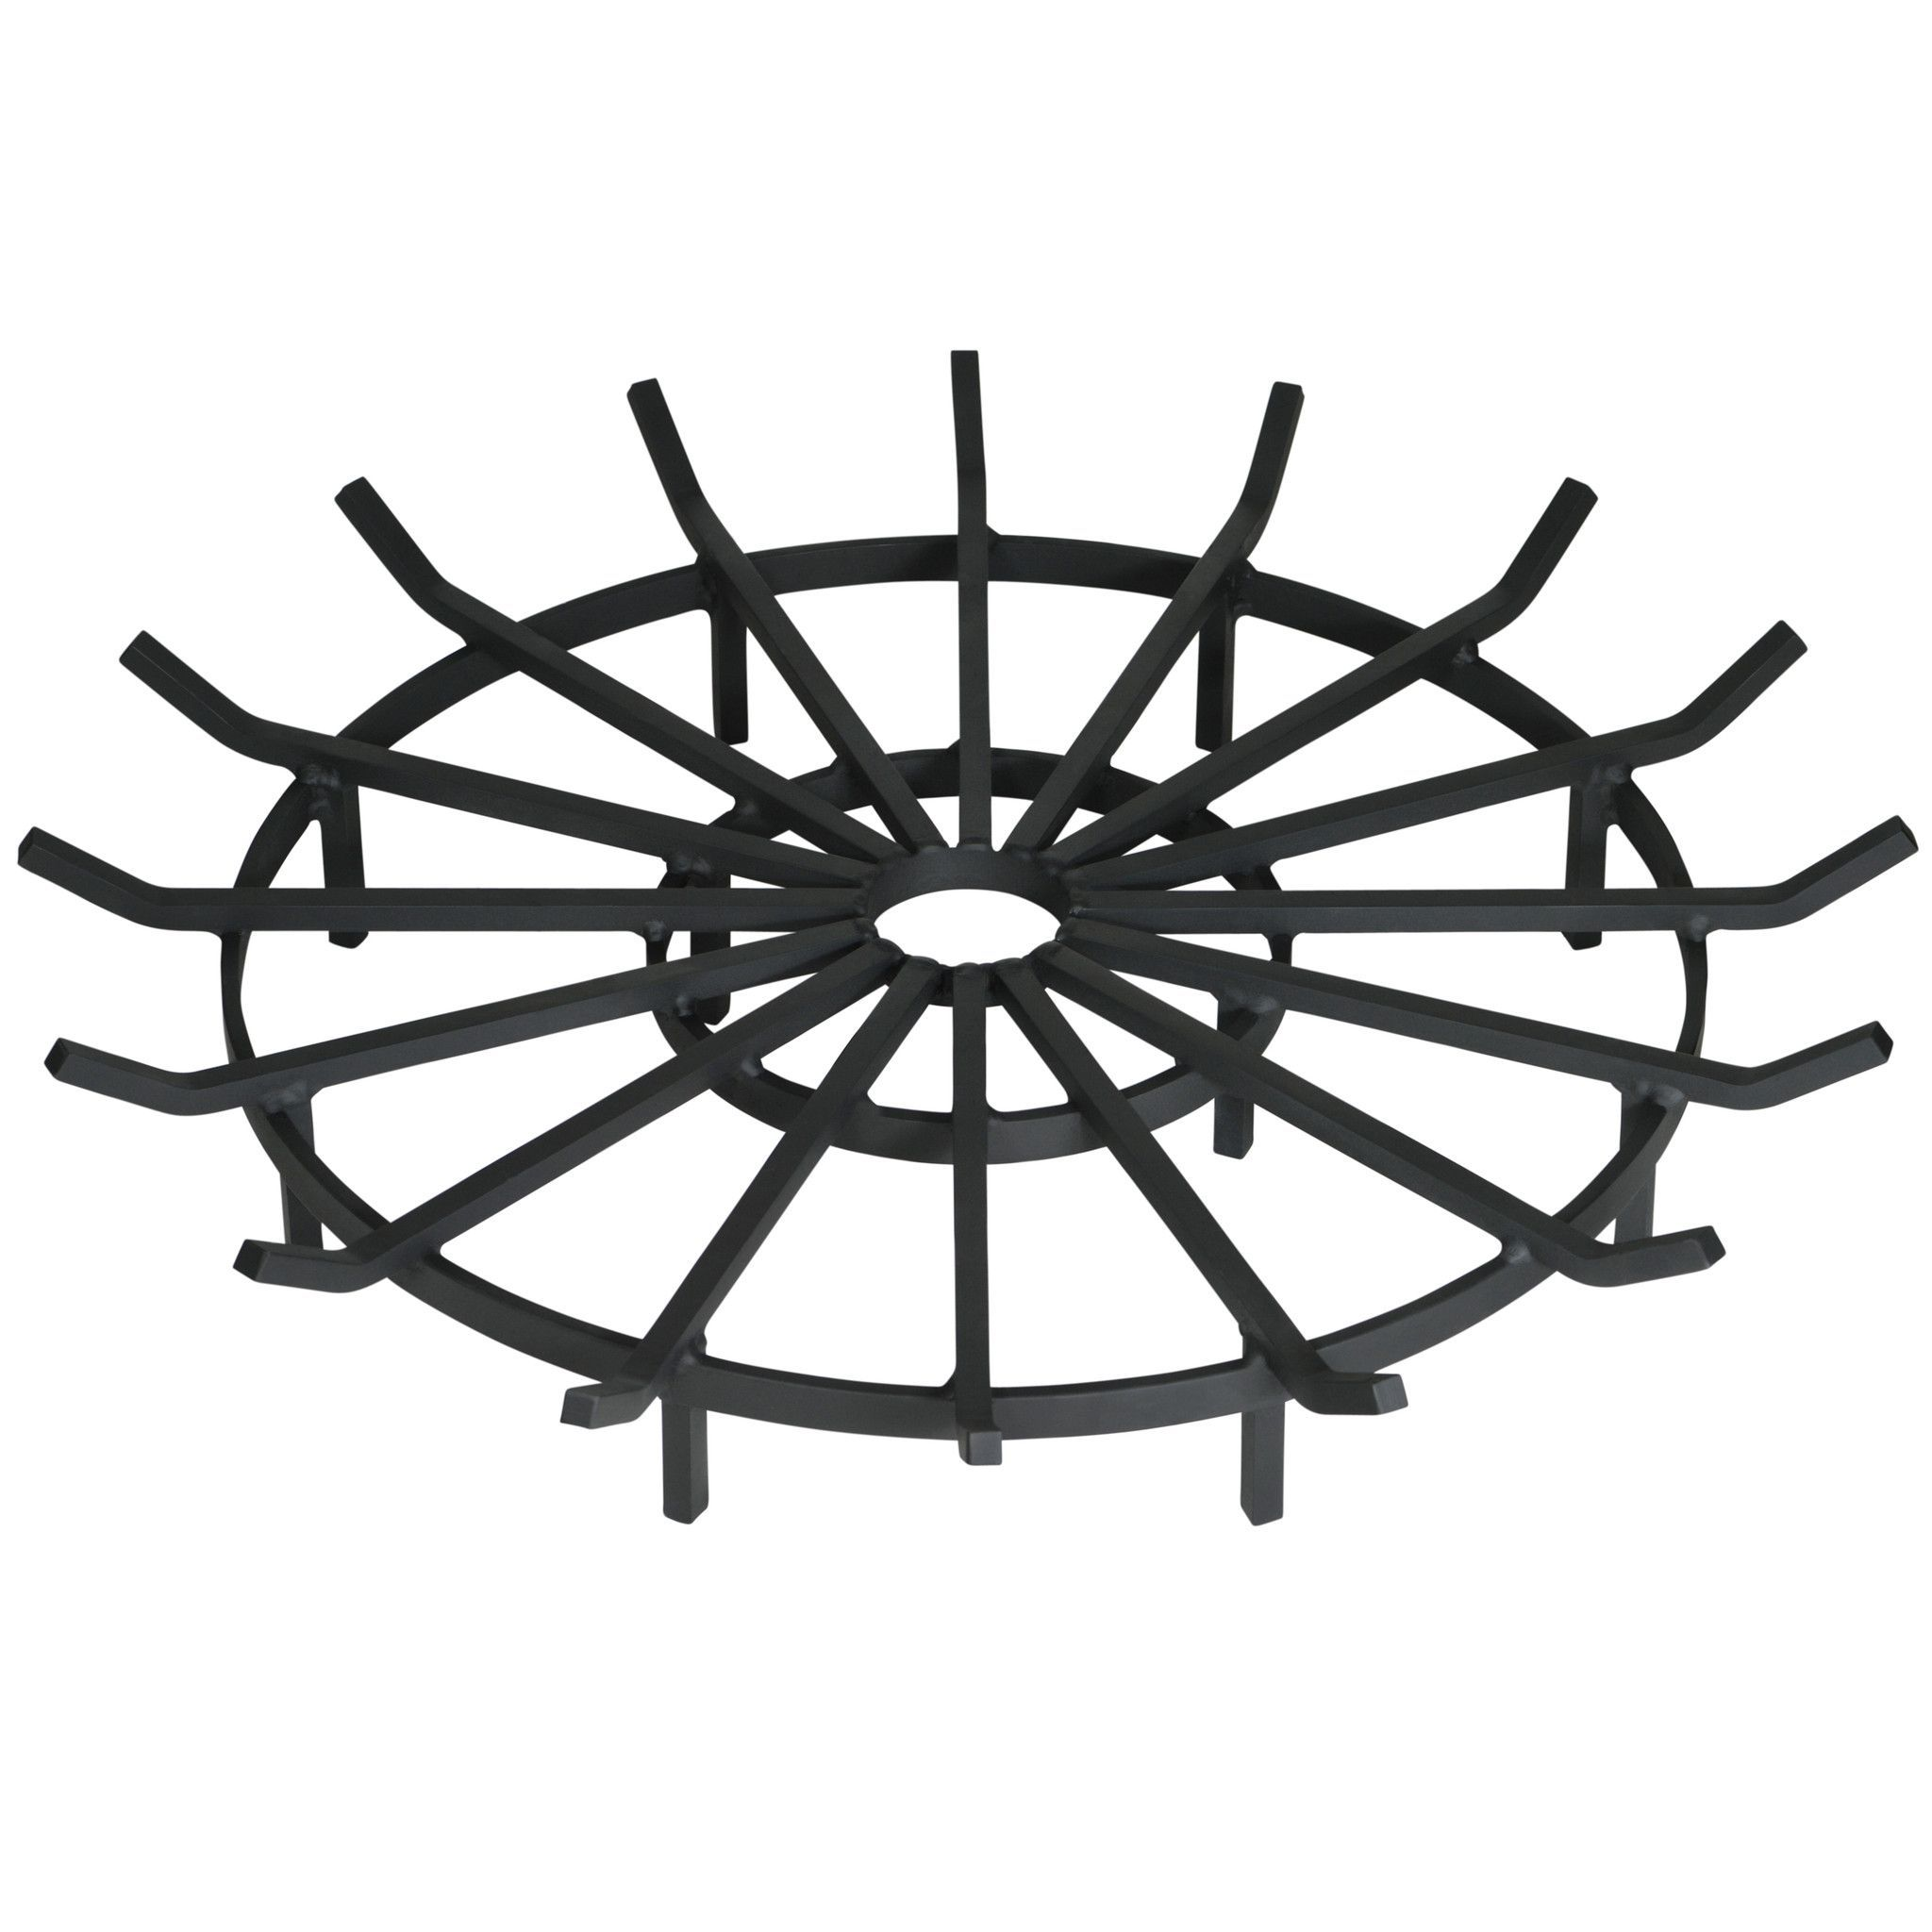 20 Inch Heavy Duty Wagon Wheel Fire Pit Grate | Products